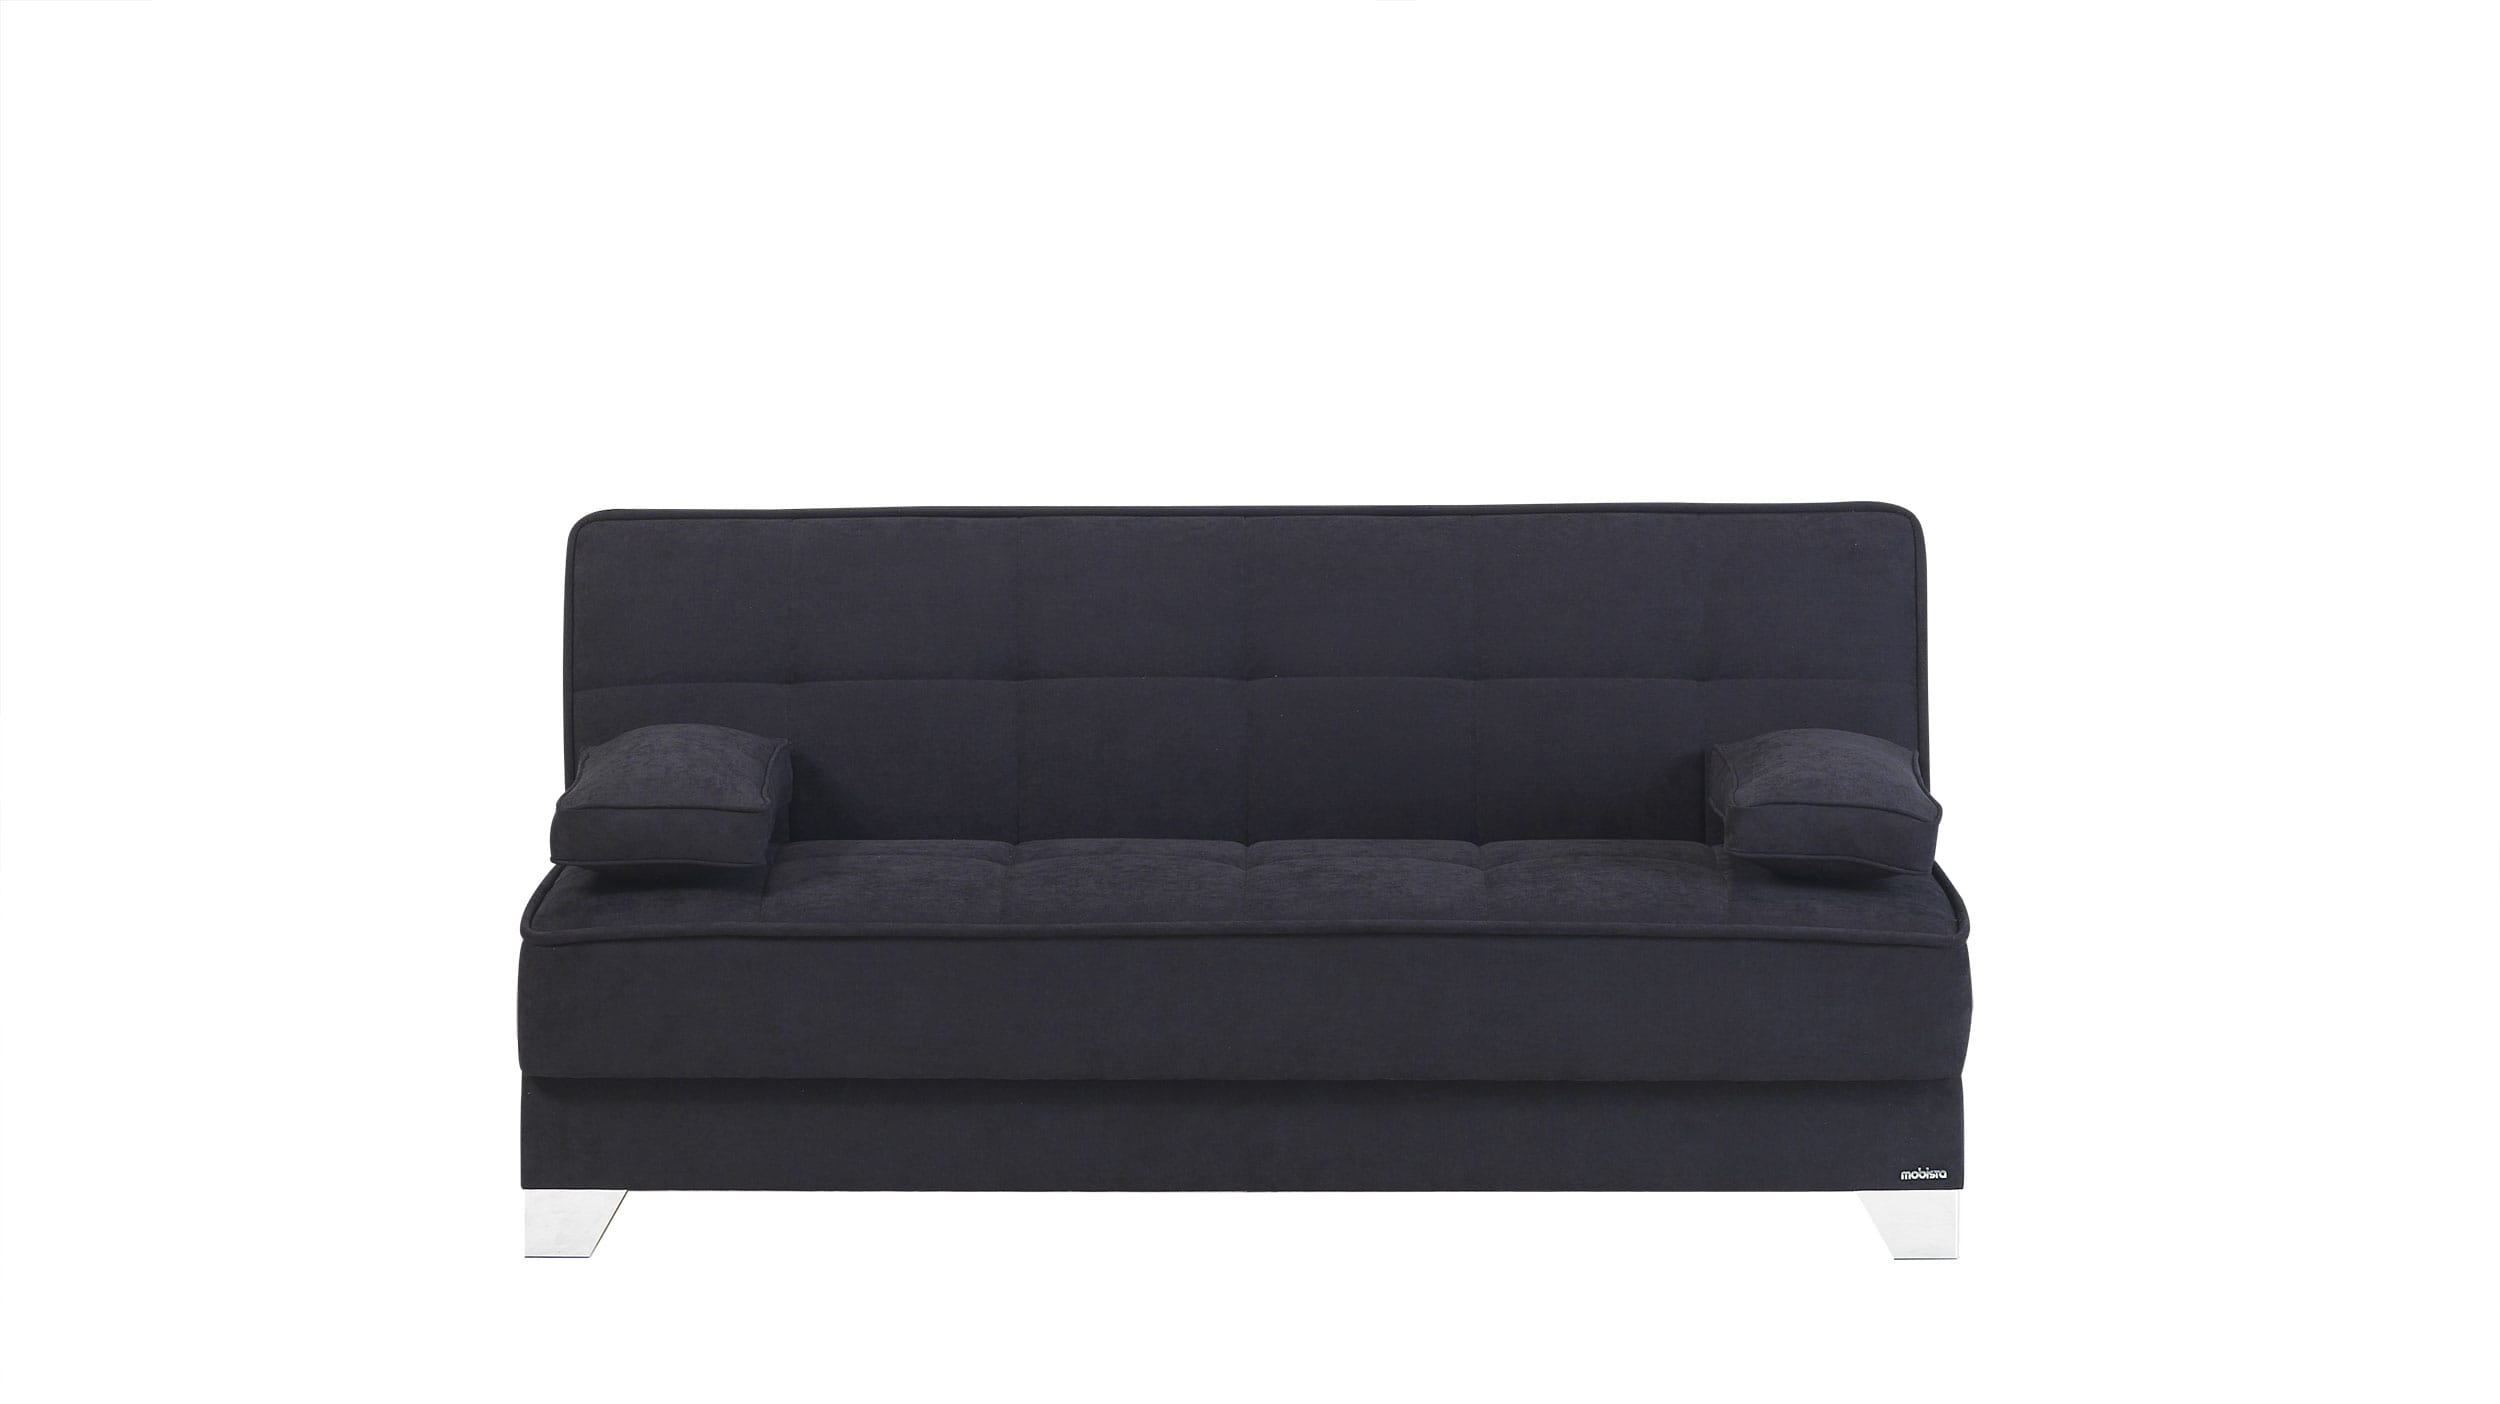 Nexo Carisma Black Sofa Bed By Mobista